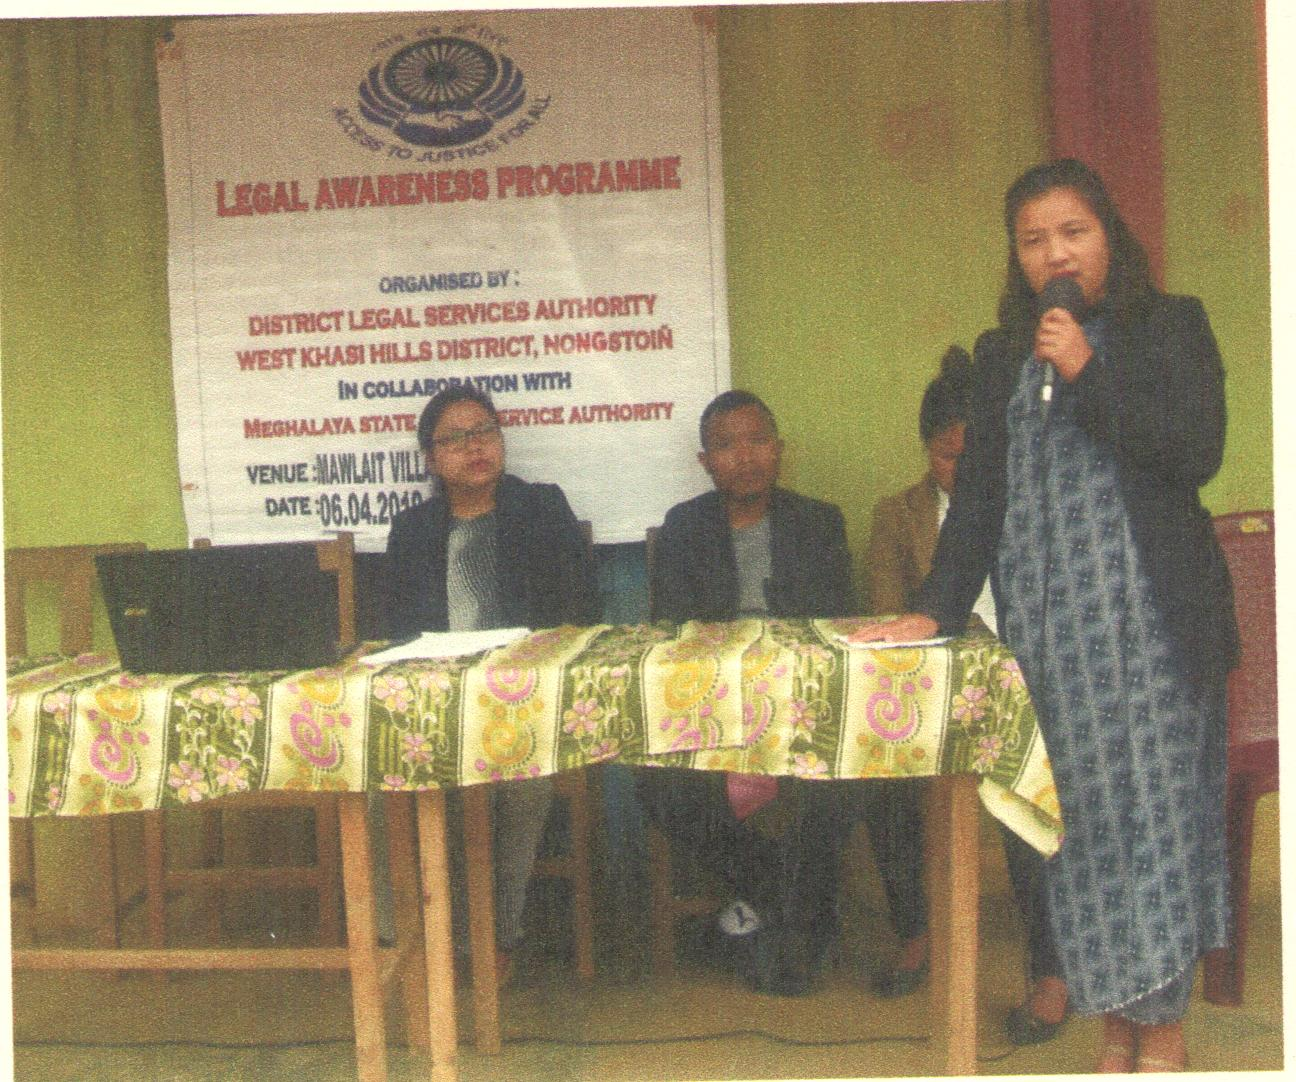 Legal Awareness Programme held at Mawlait village, Nongstoin on the 6-4-2019